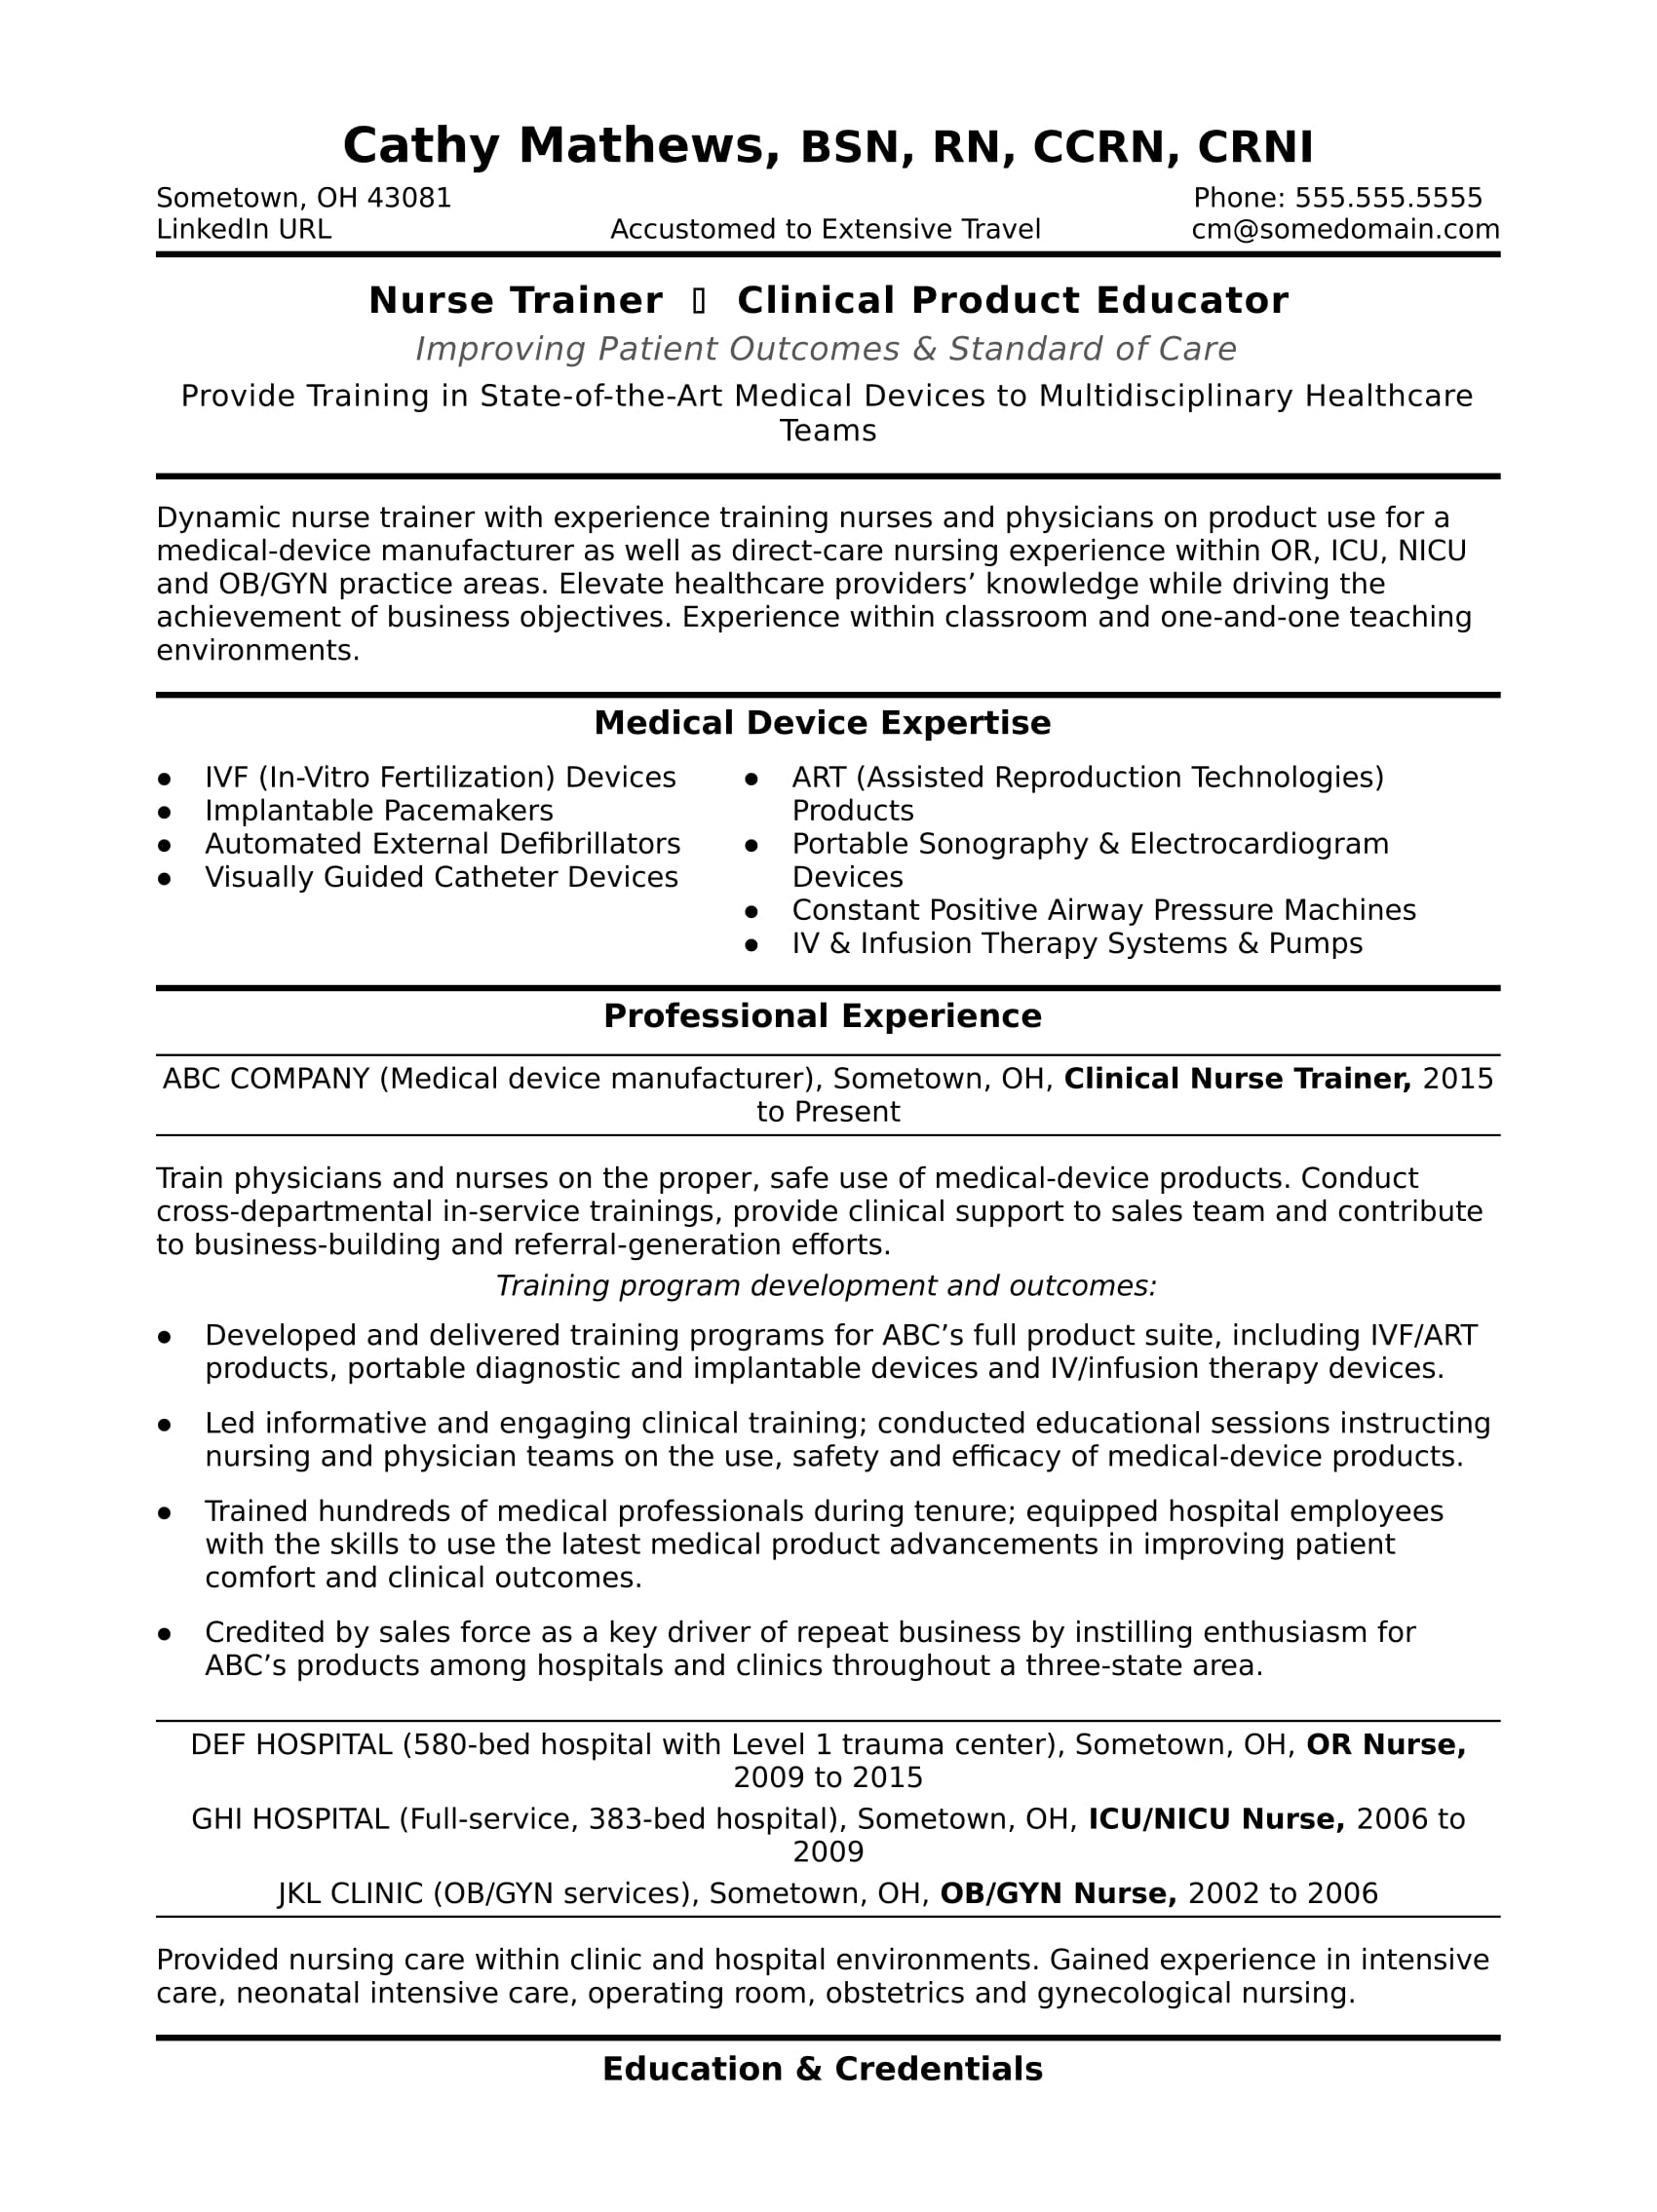 Awesome Sample Resume For A Nurse Trainer